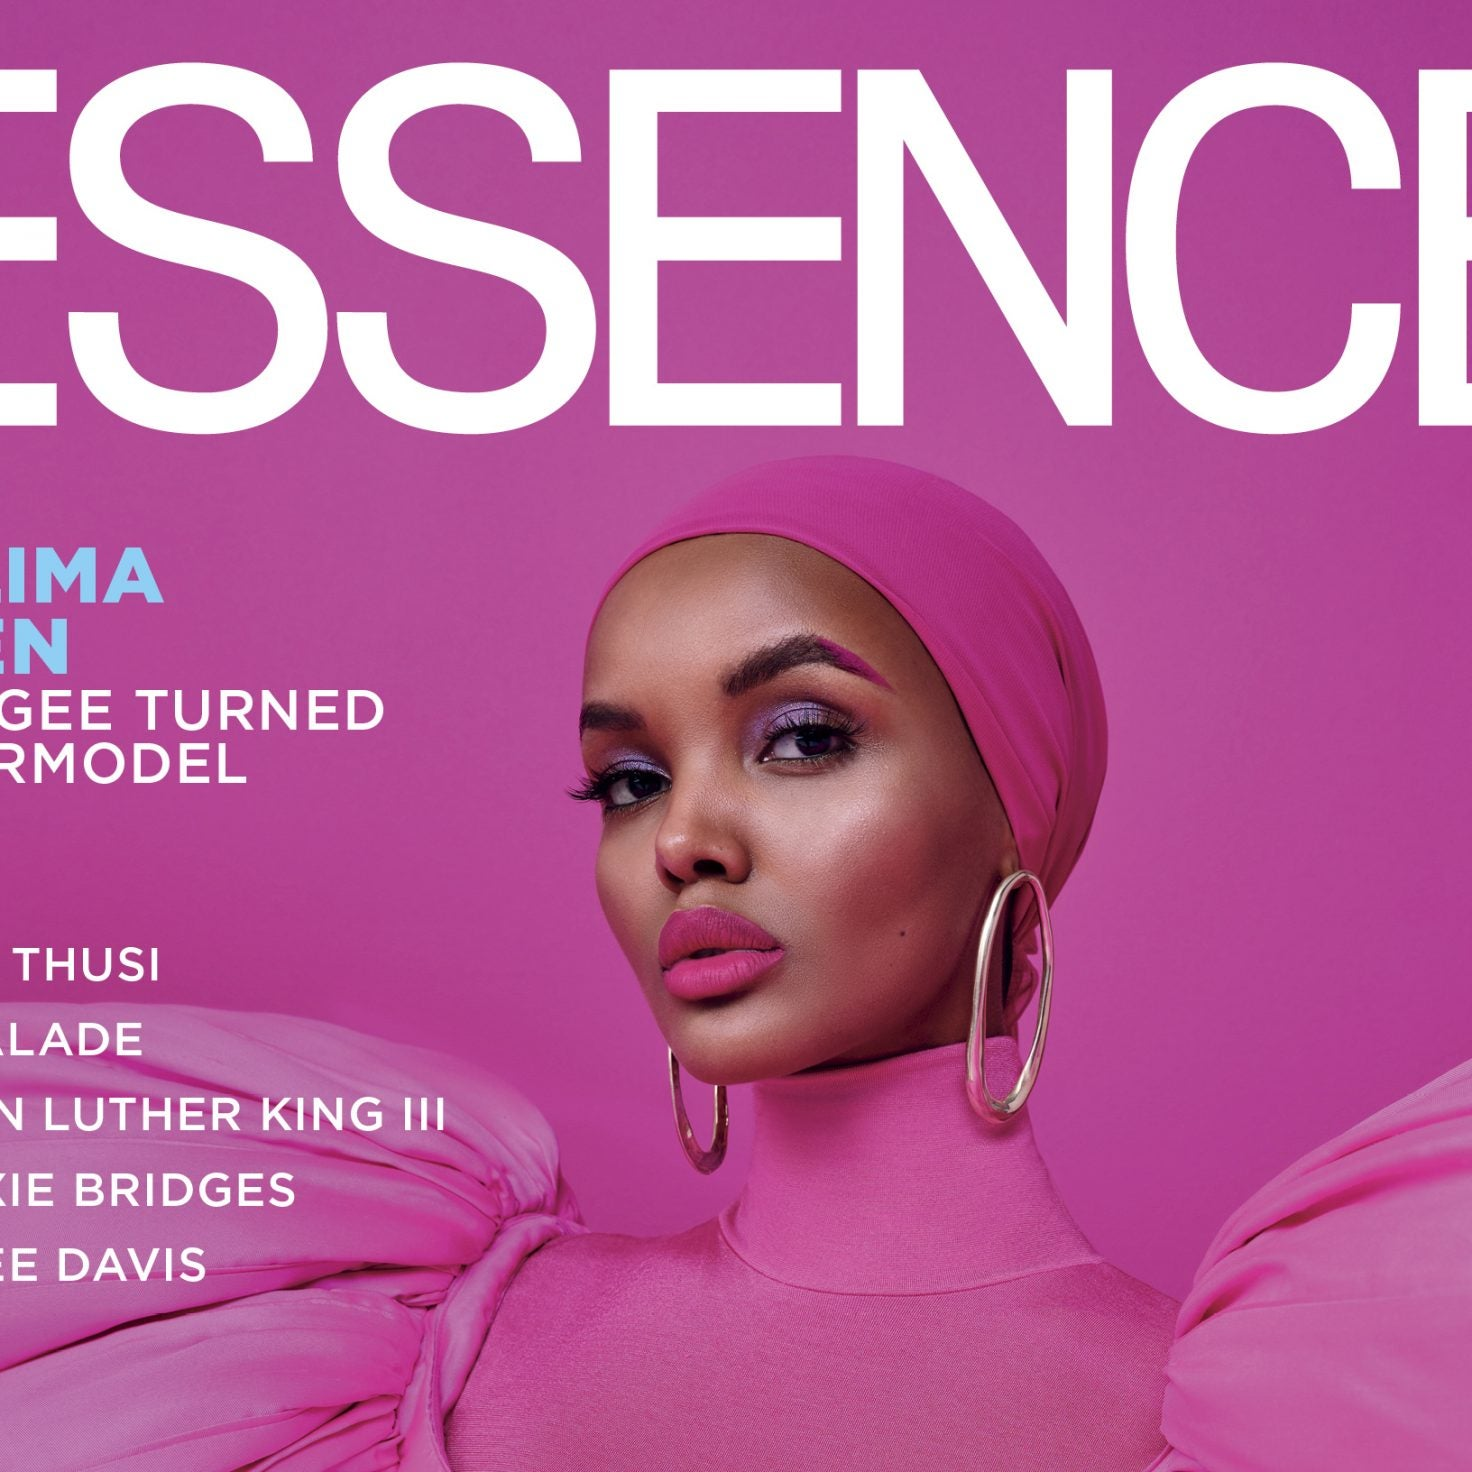 First Look: Model Halima Aden Celebrates Disrupting Traditional Beauty Standards On January 2020 Cover Of ESSENCE